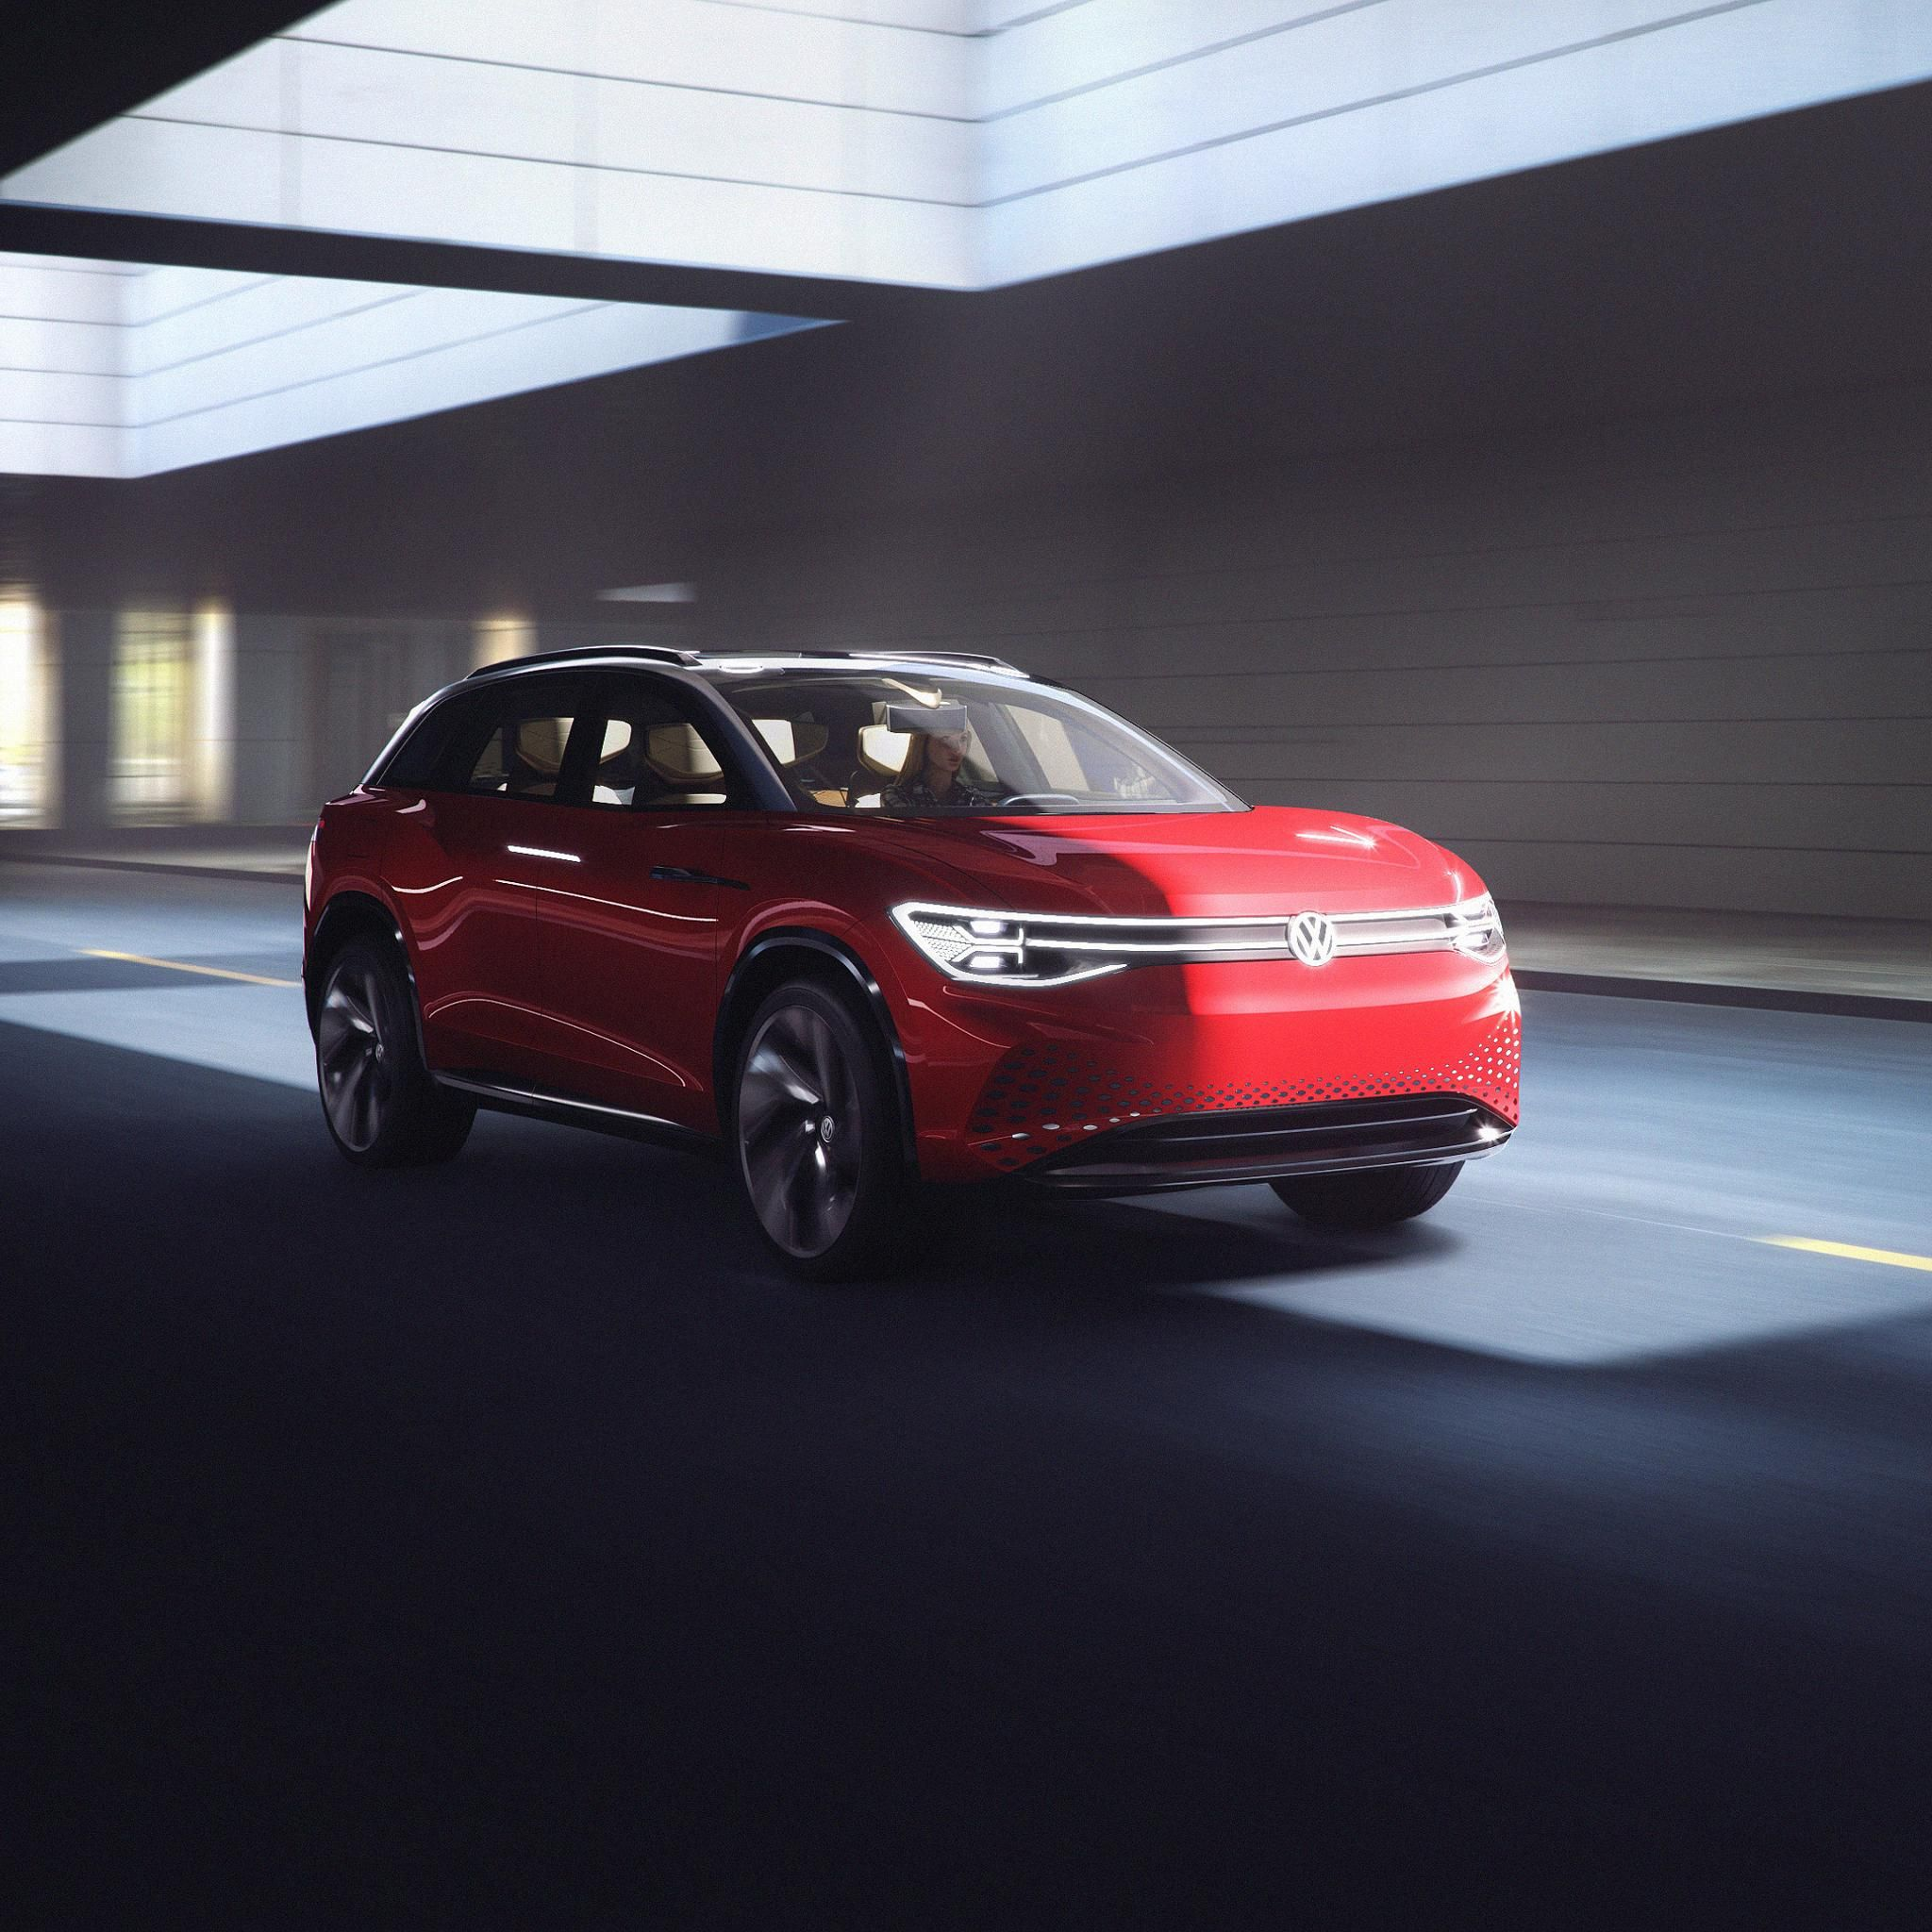 VW's New EV SUV Has Upholstery Made From Apples